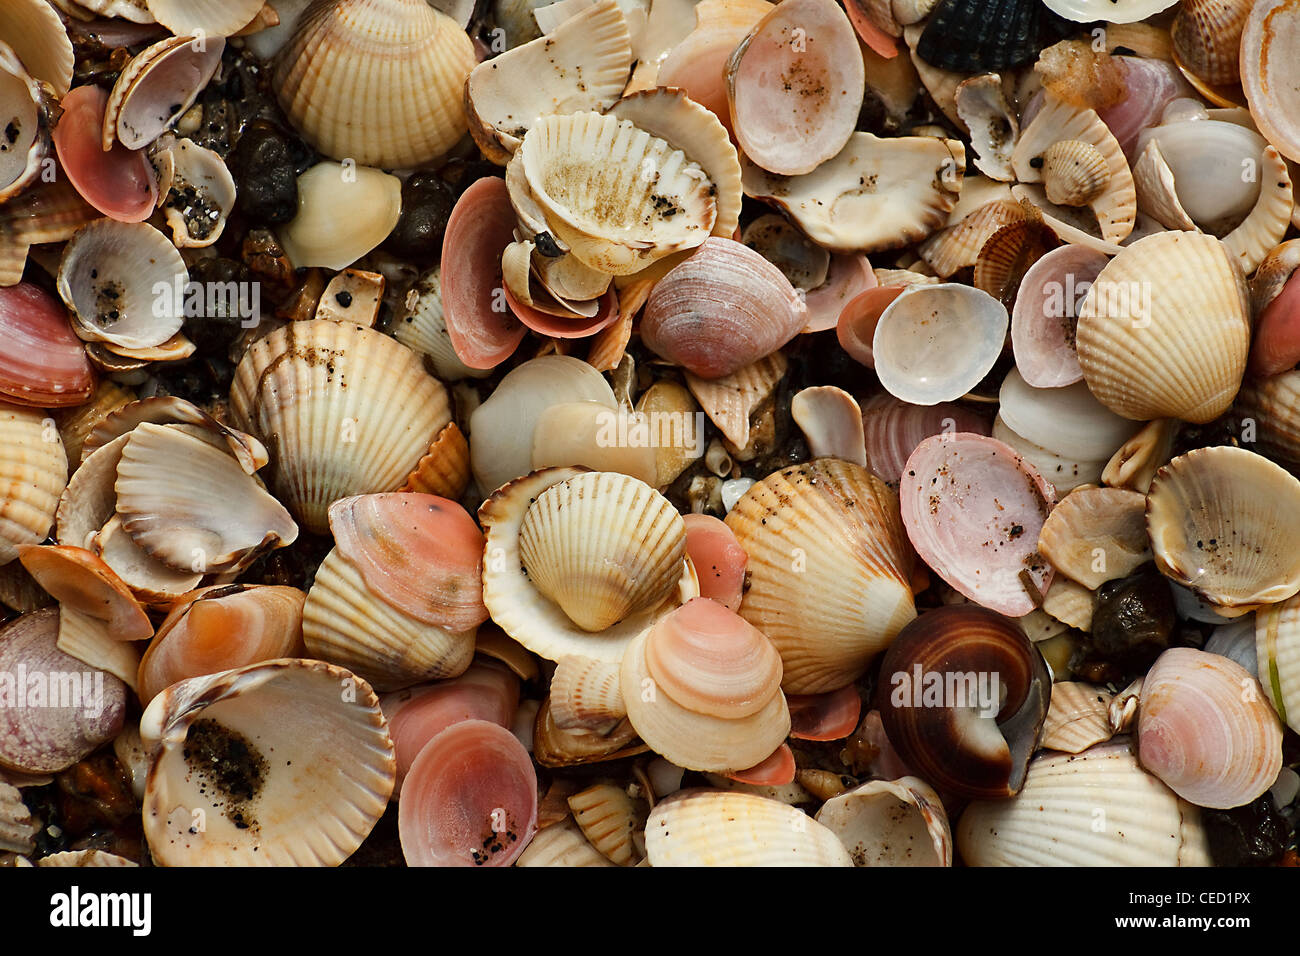 A collection of different shells washed up on the beach - Stock Image